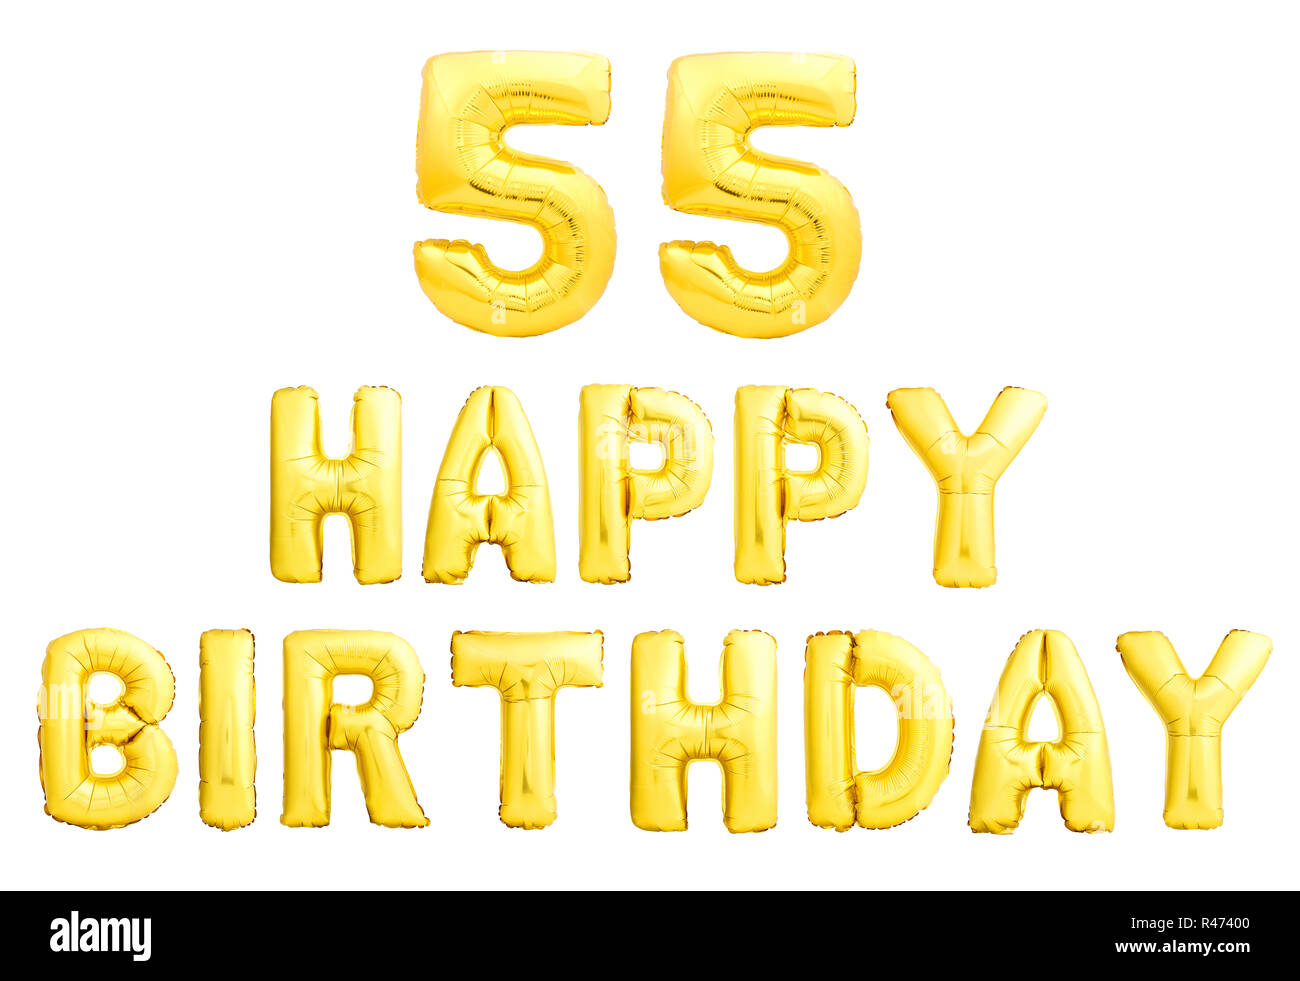 Happy birthday 55 years golden inflatable balloons isolated on white  background. - Stock Image 69d5a94cf7